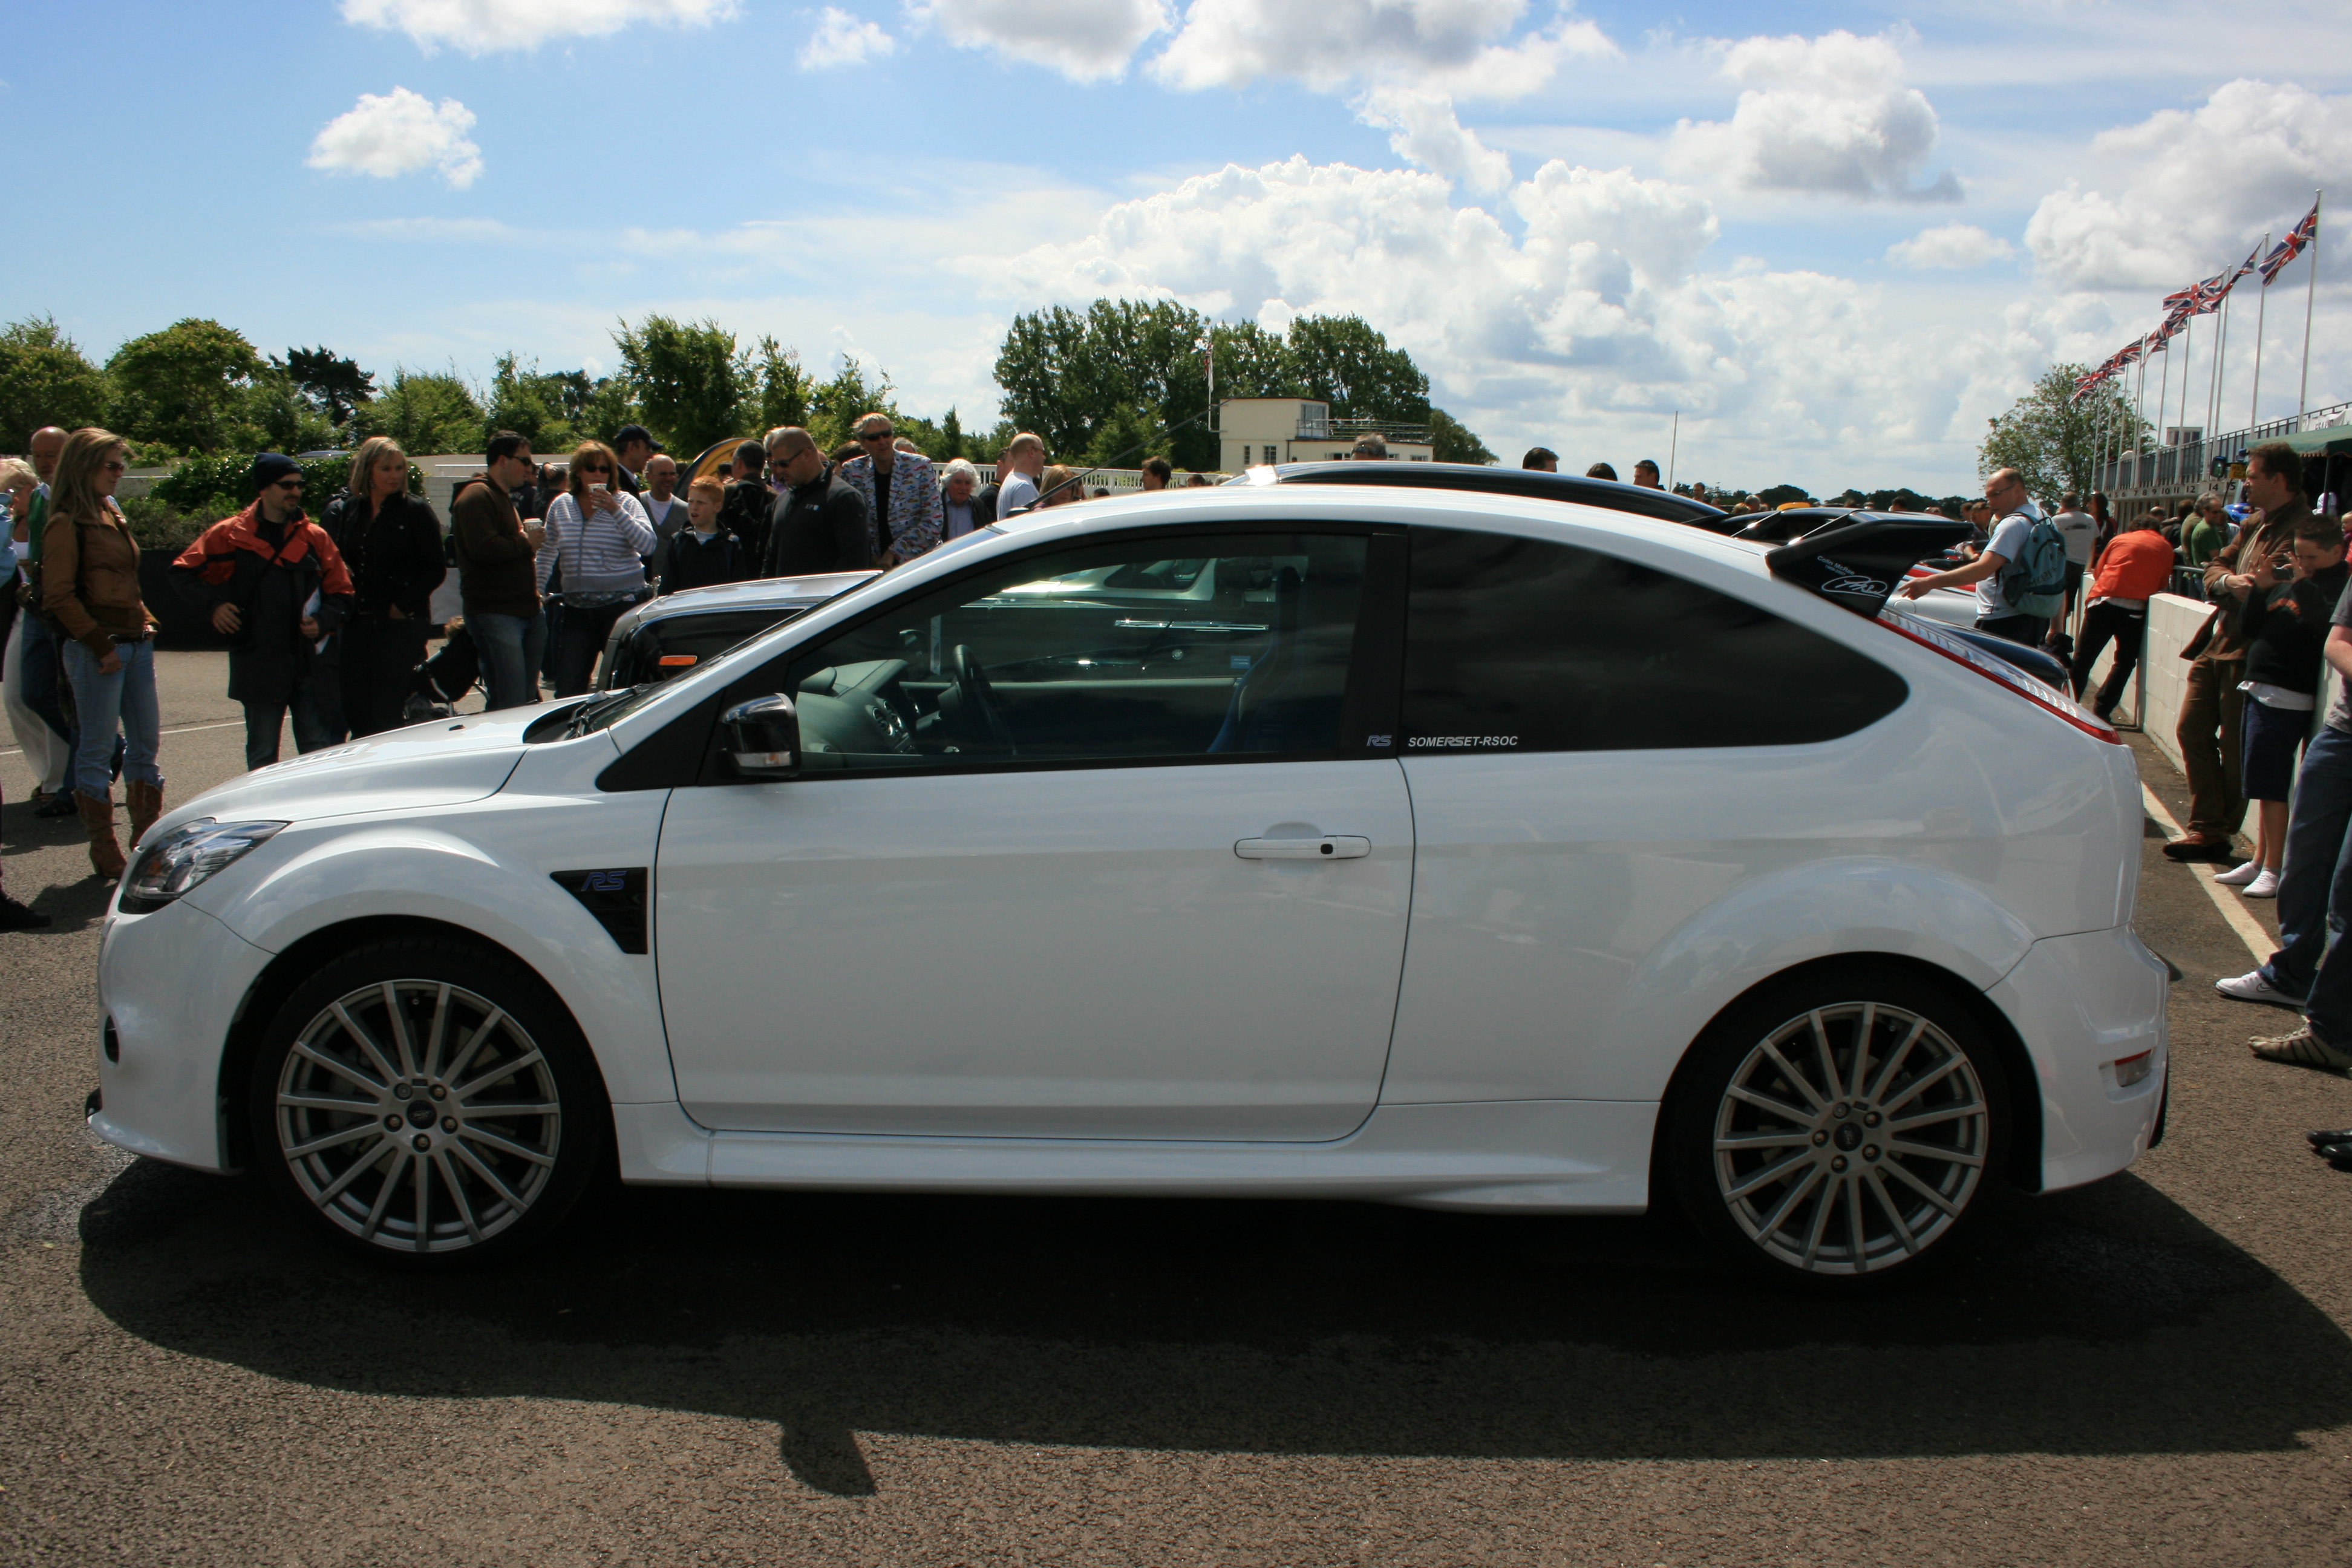 Ford Focus Wikipedia File:Ford Focus RS - Flickr - Supermac1961 (1).jpg ...